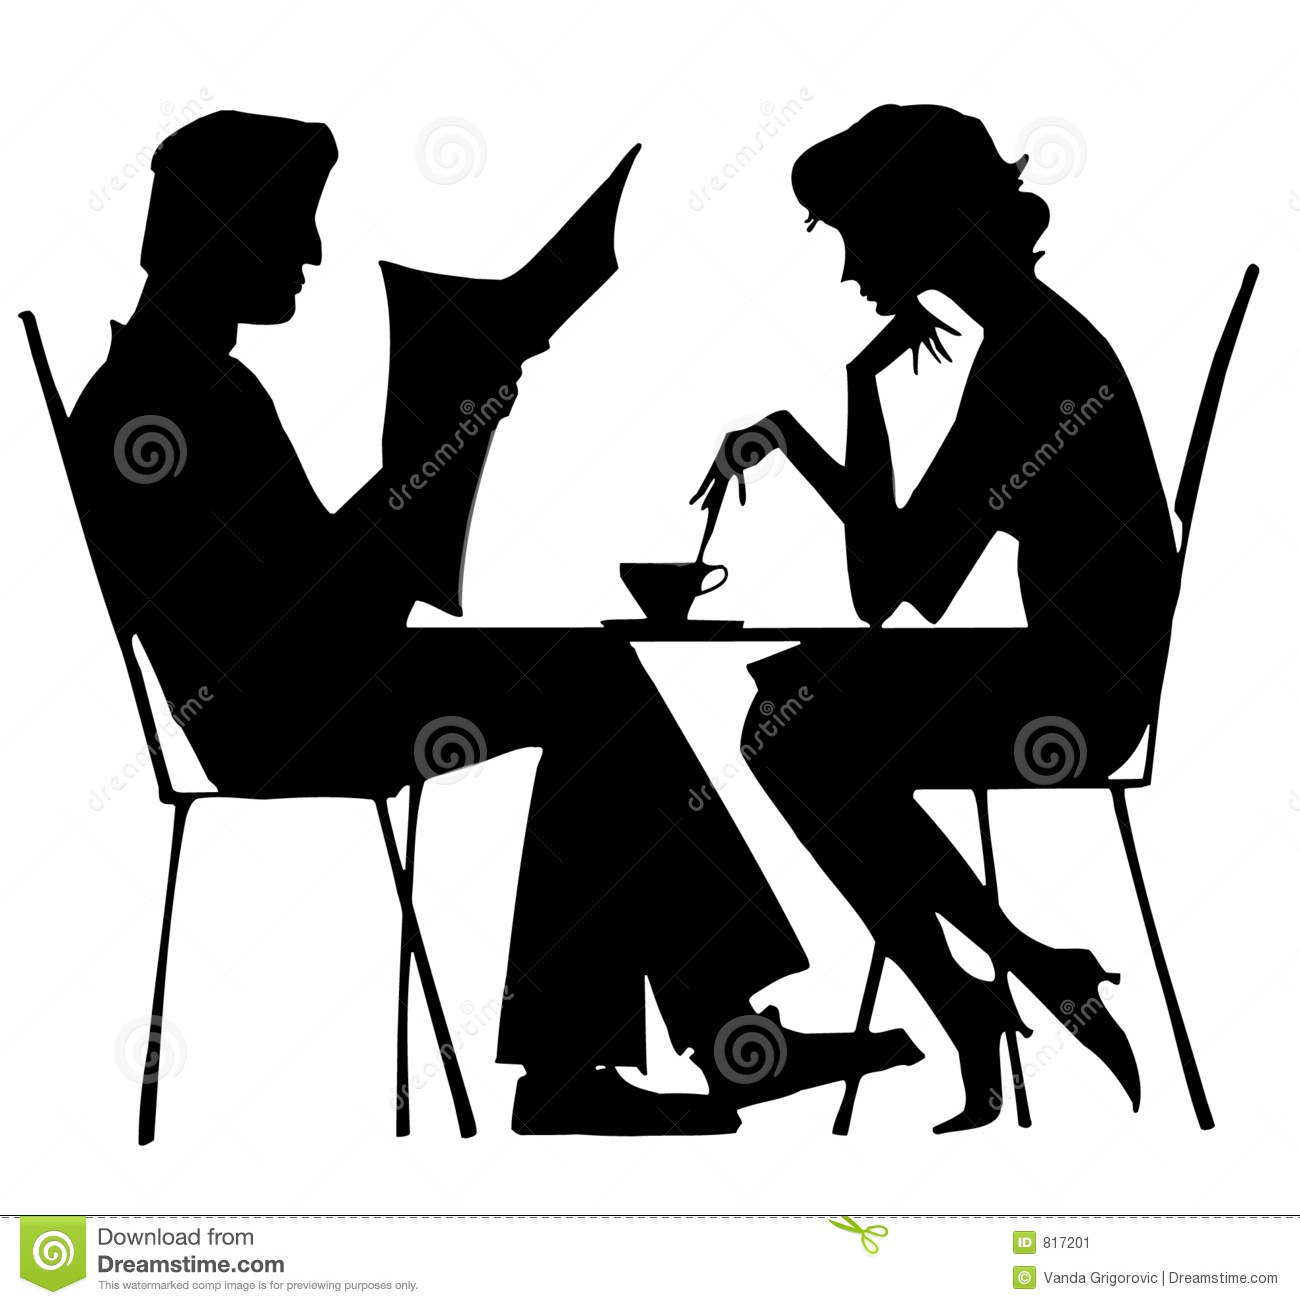 Silhouette of a couple at restaurant royalty free stock photos image - Silhouette Of Couple Stock Image Image 817201